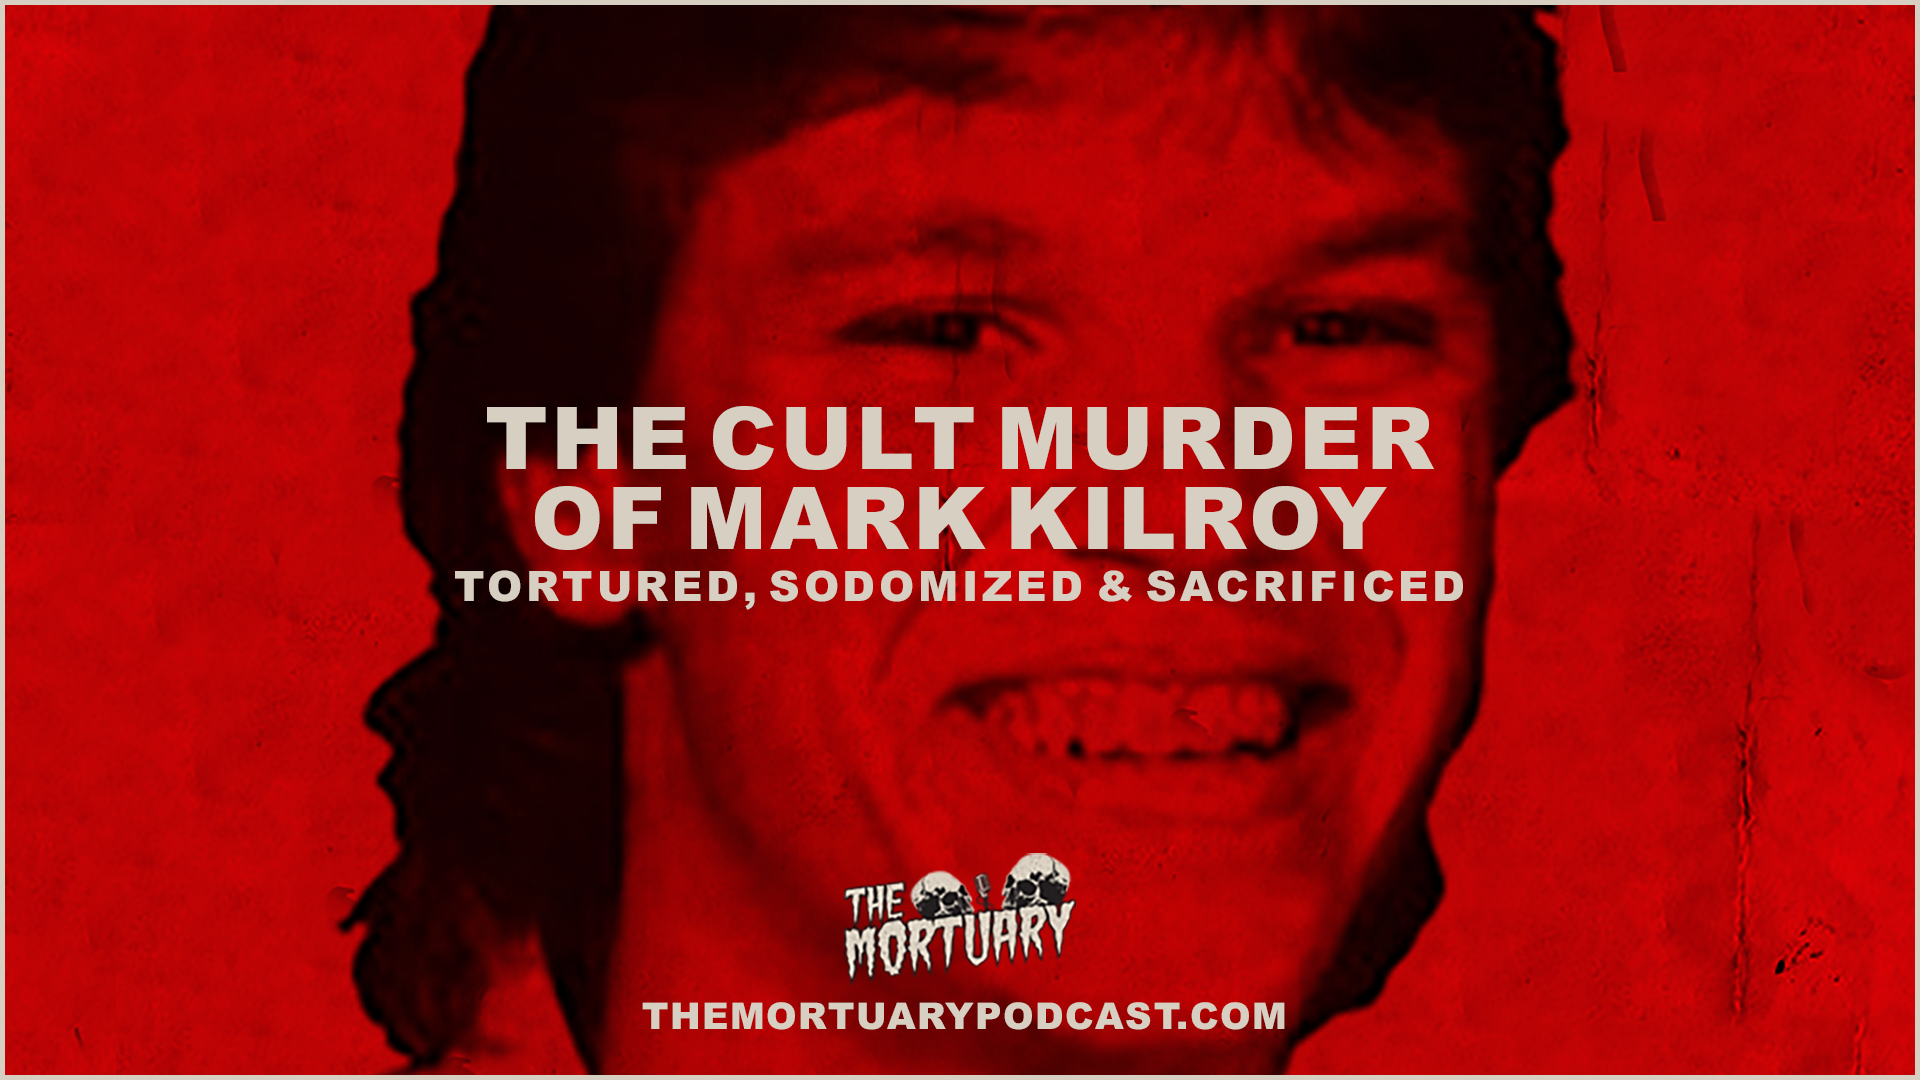 murder — Enter The Mortuary (Blog) — The Mortuary Podcast